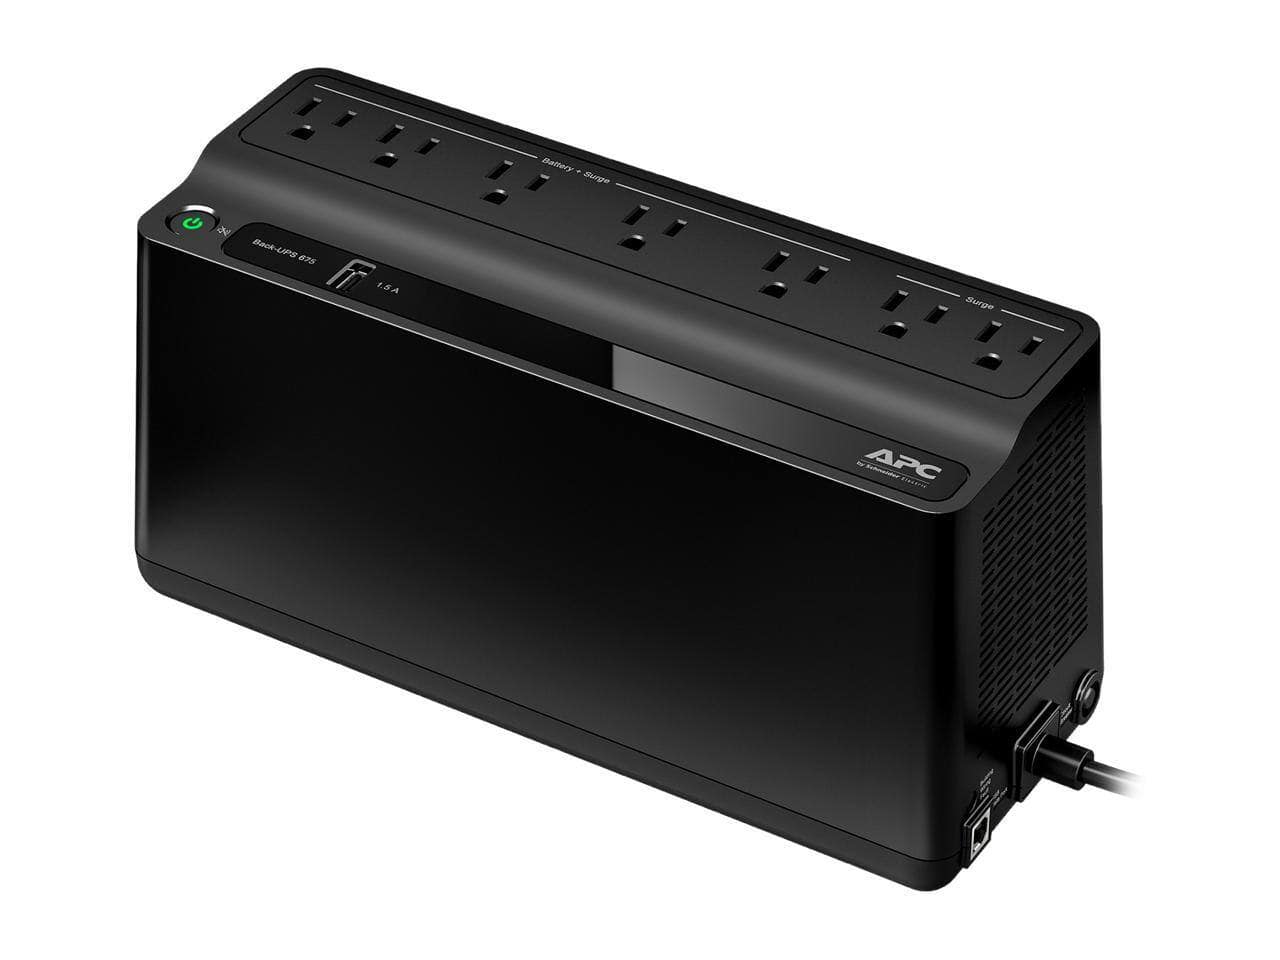 APC BE670M1 675 VA 360 Watts 7 Outlets Uninterruptible Power Supply (UPS) with USB Charging Port for $54.99 + Free Shipping